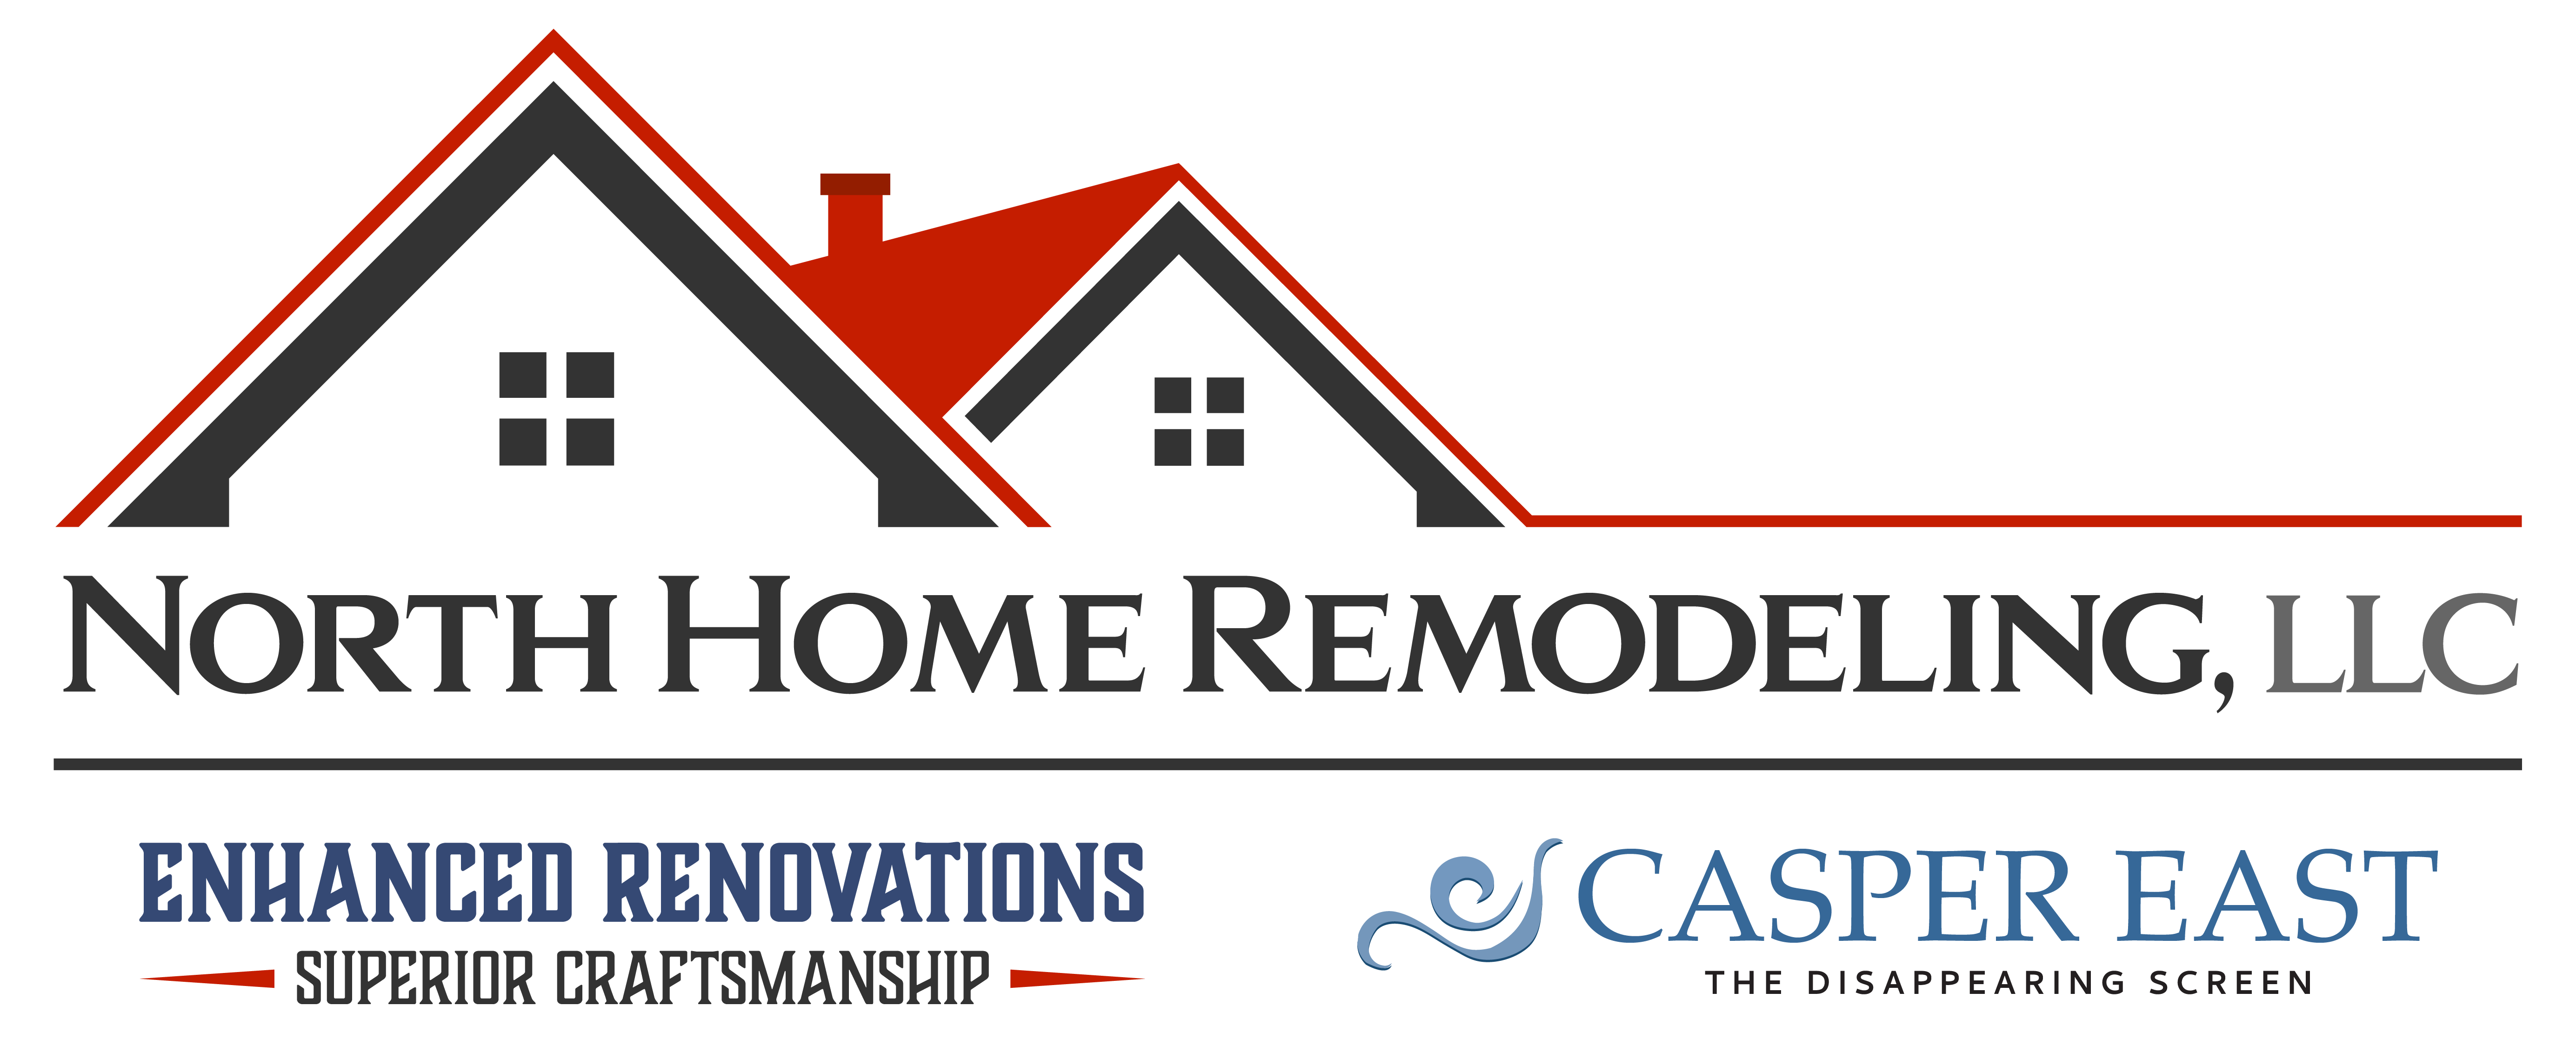 North home remodeling logo